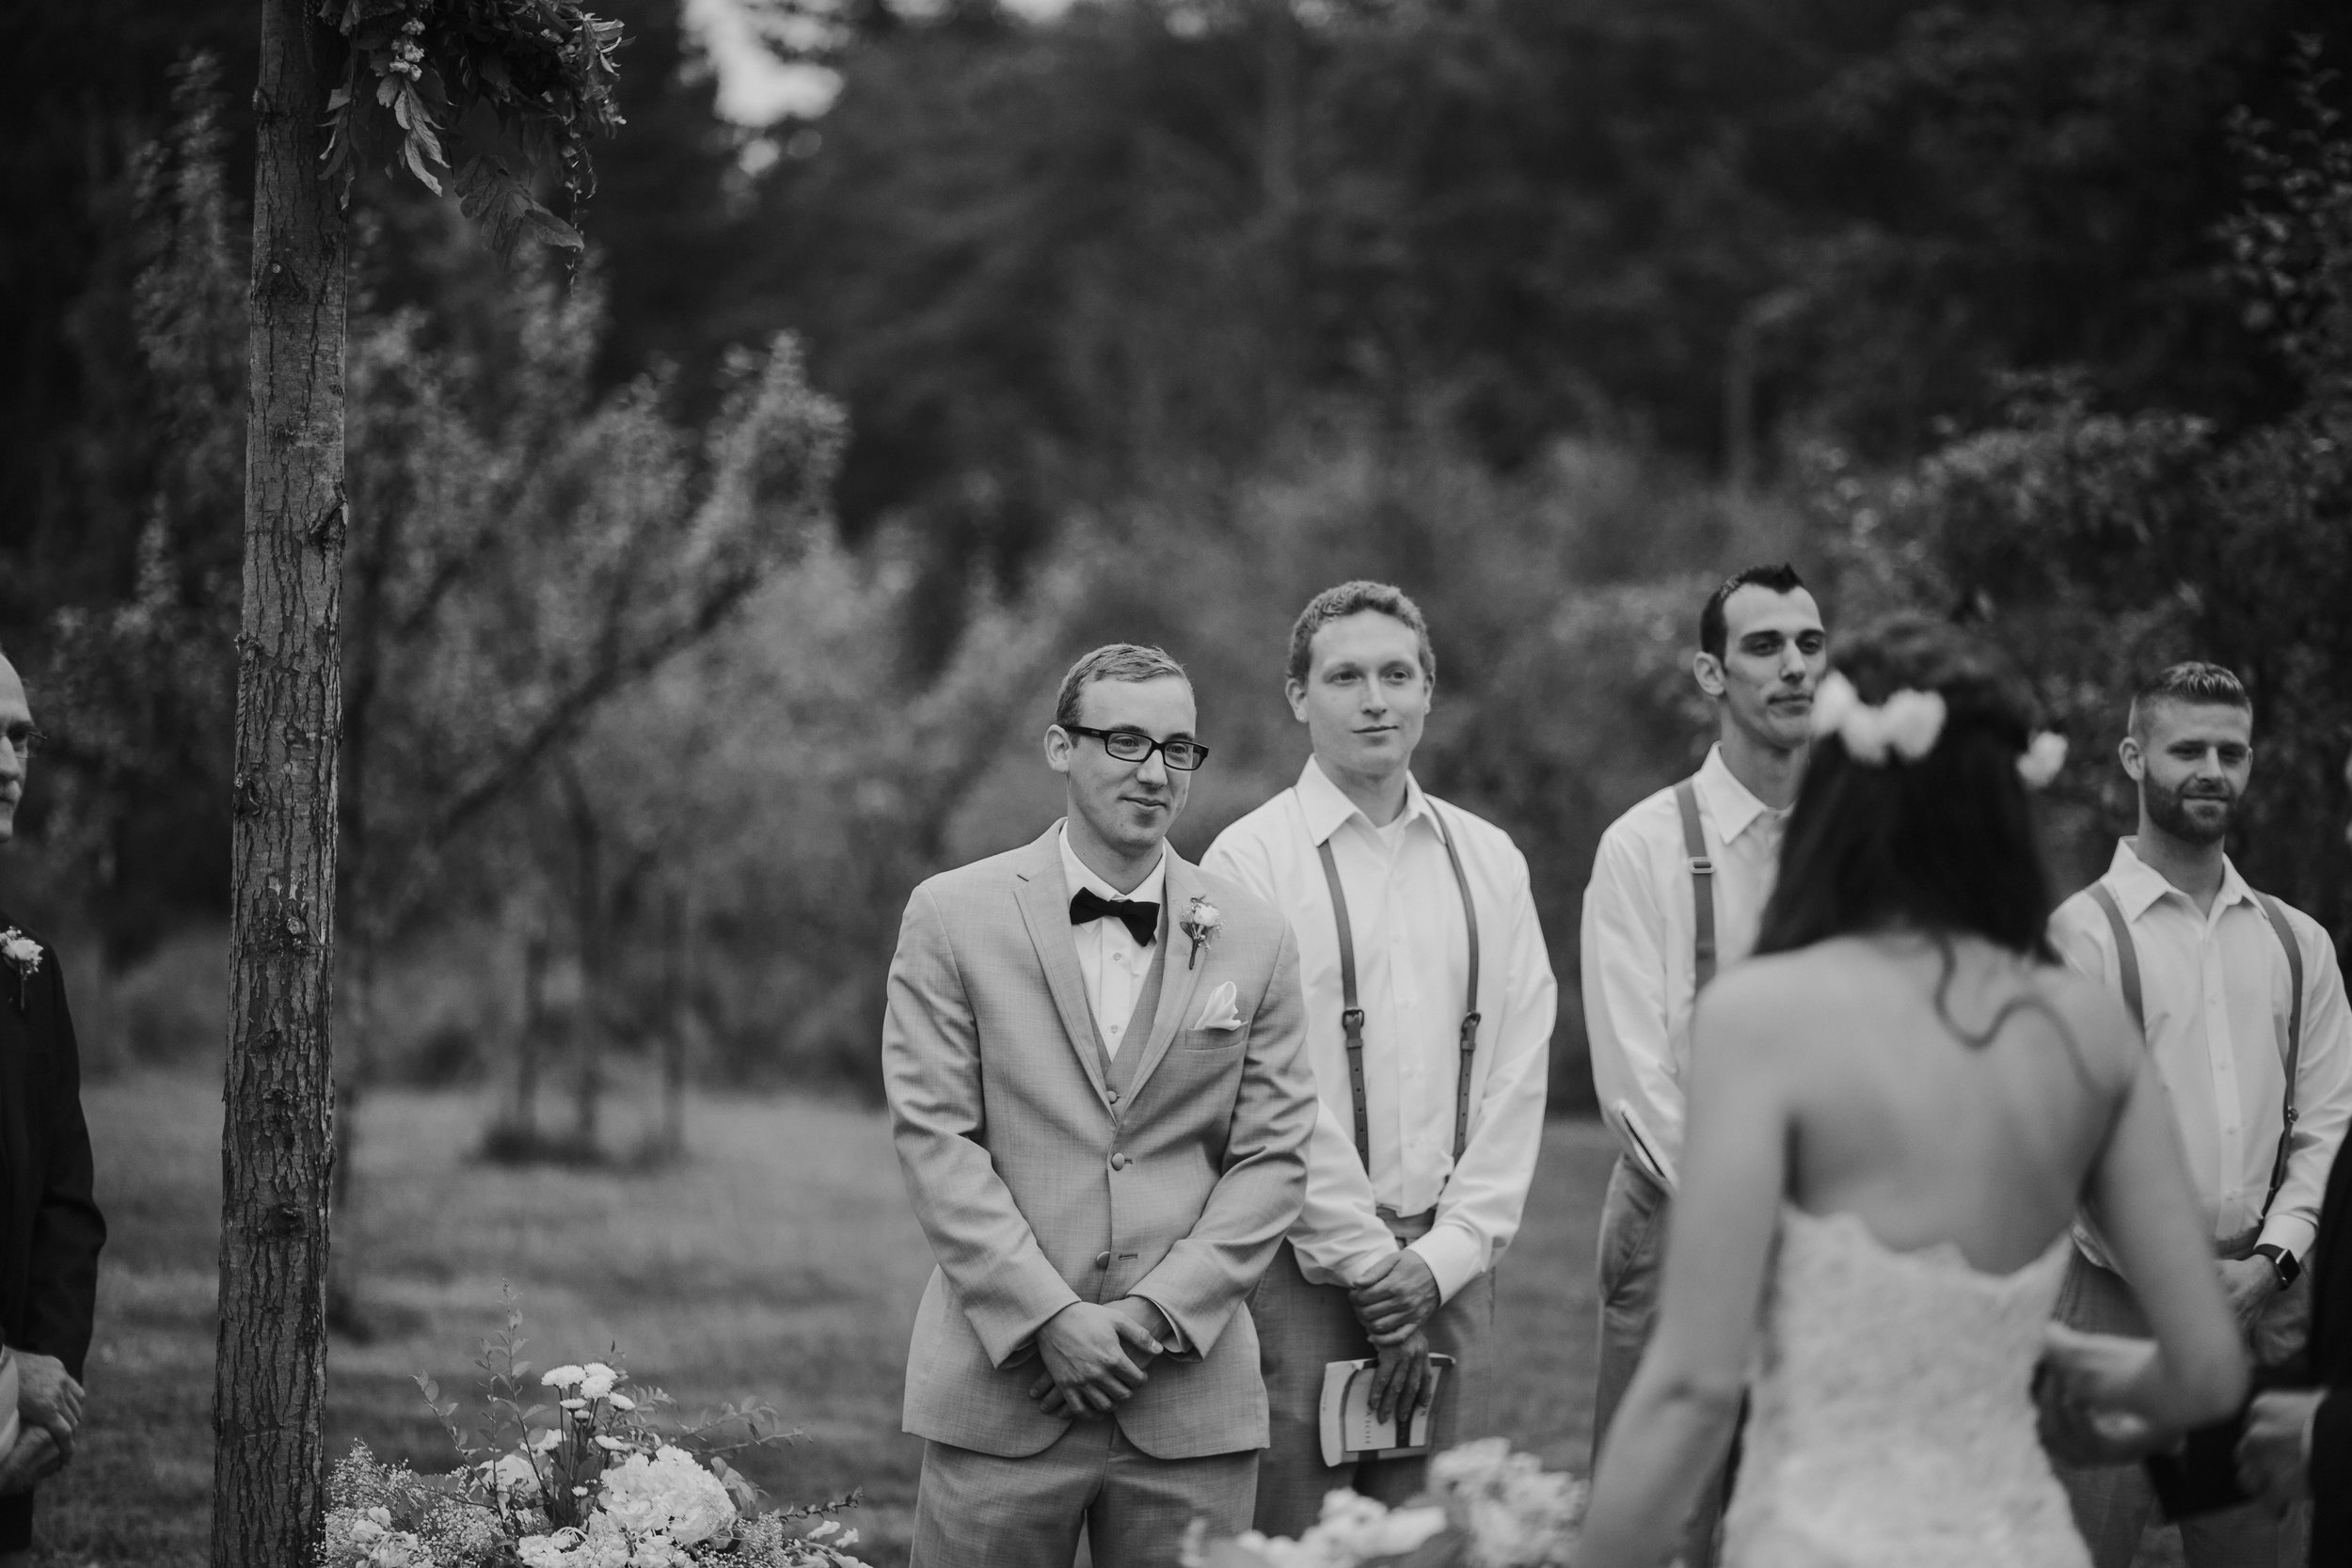 Port-Angeles-elopement-wedding-pnw-olympic-peninsula-photographer-portrait-kayladawnphoto-kayla-dawn-photography-olympic-national-park-55.jpg